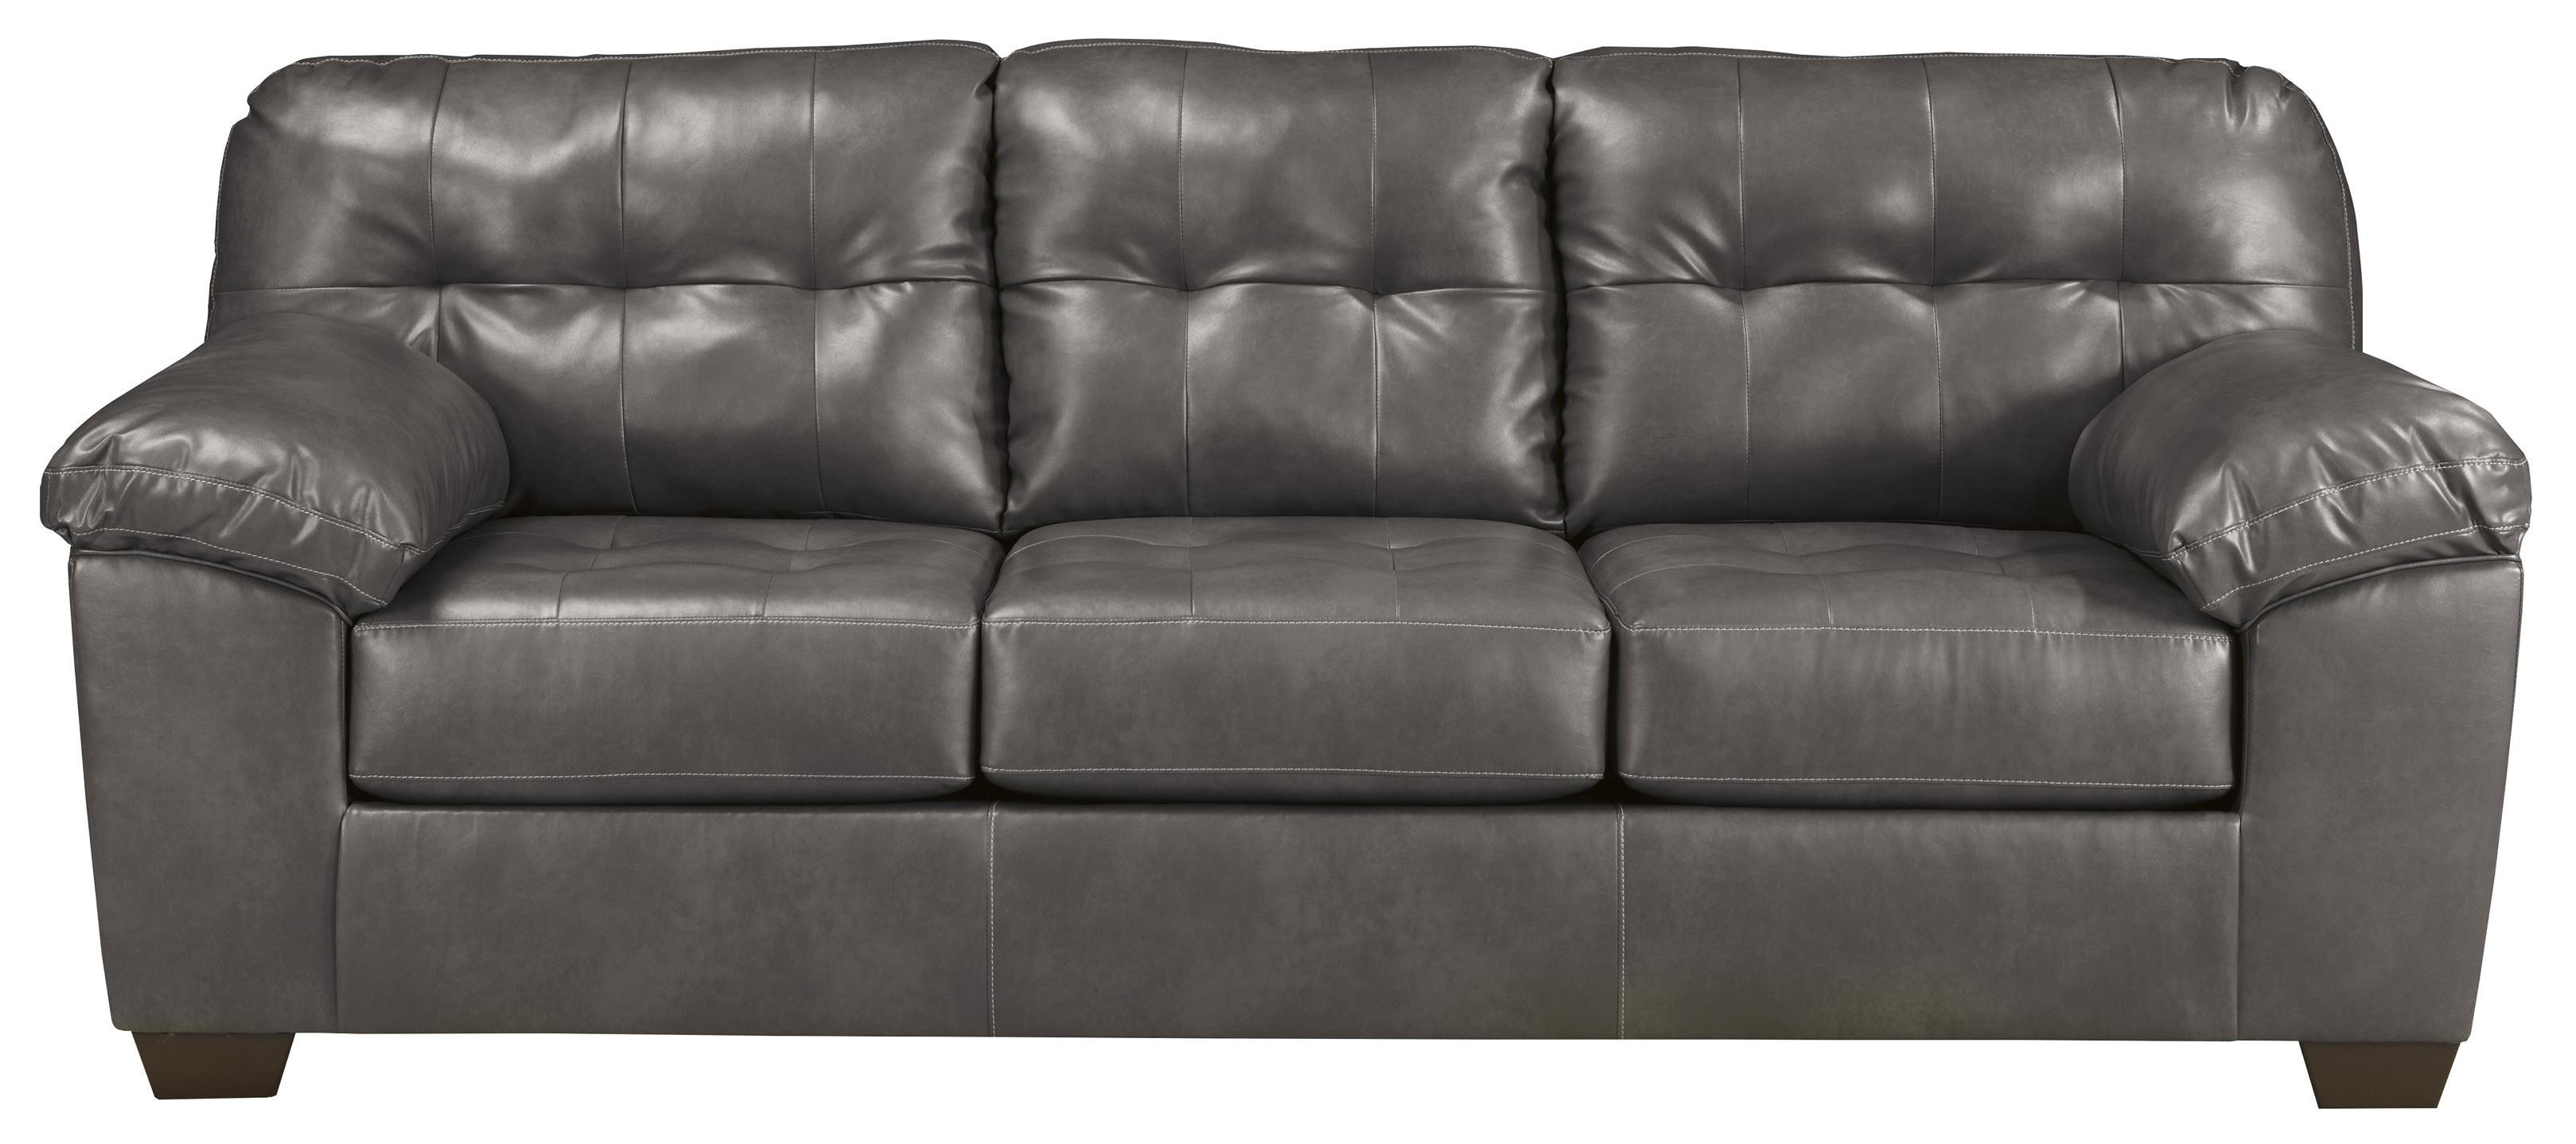 Leather Sleeper Sofa Set